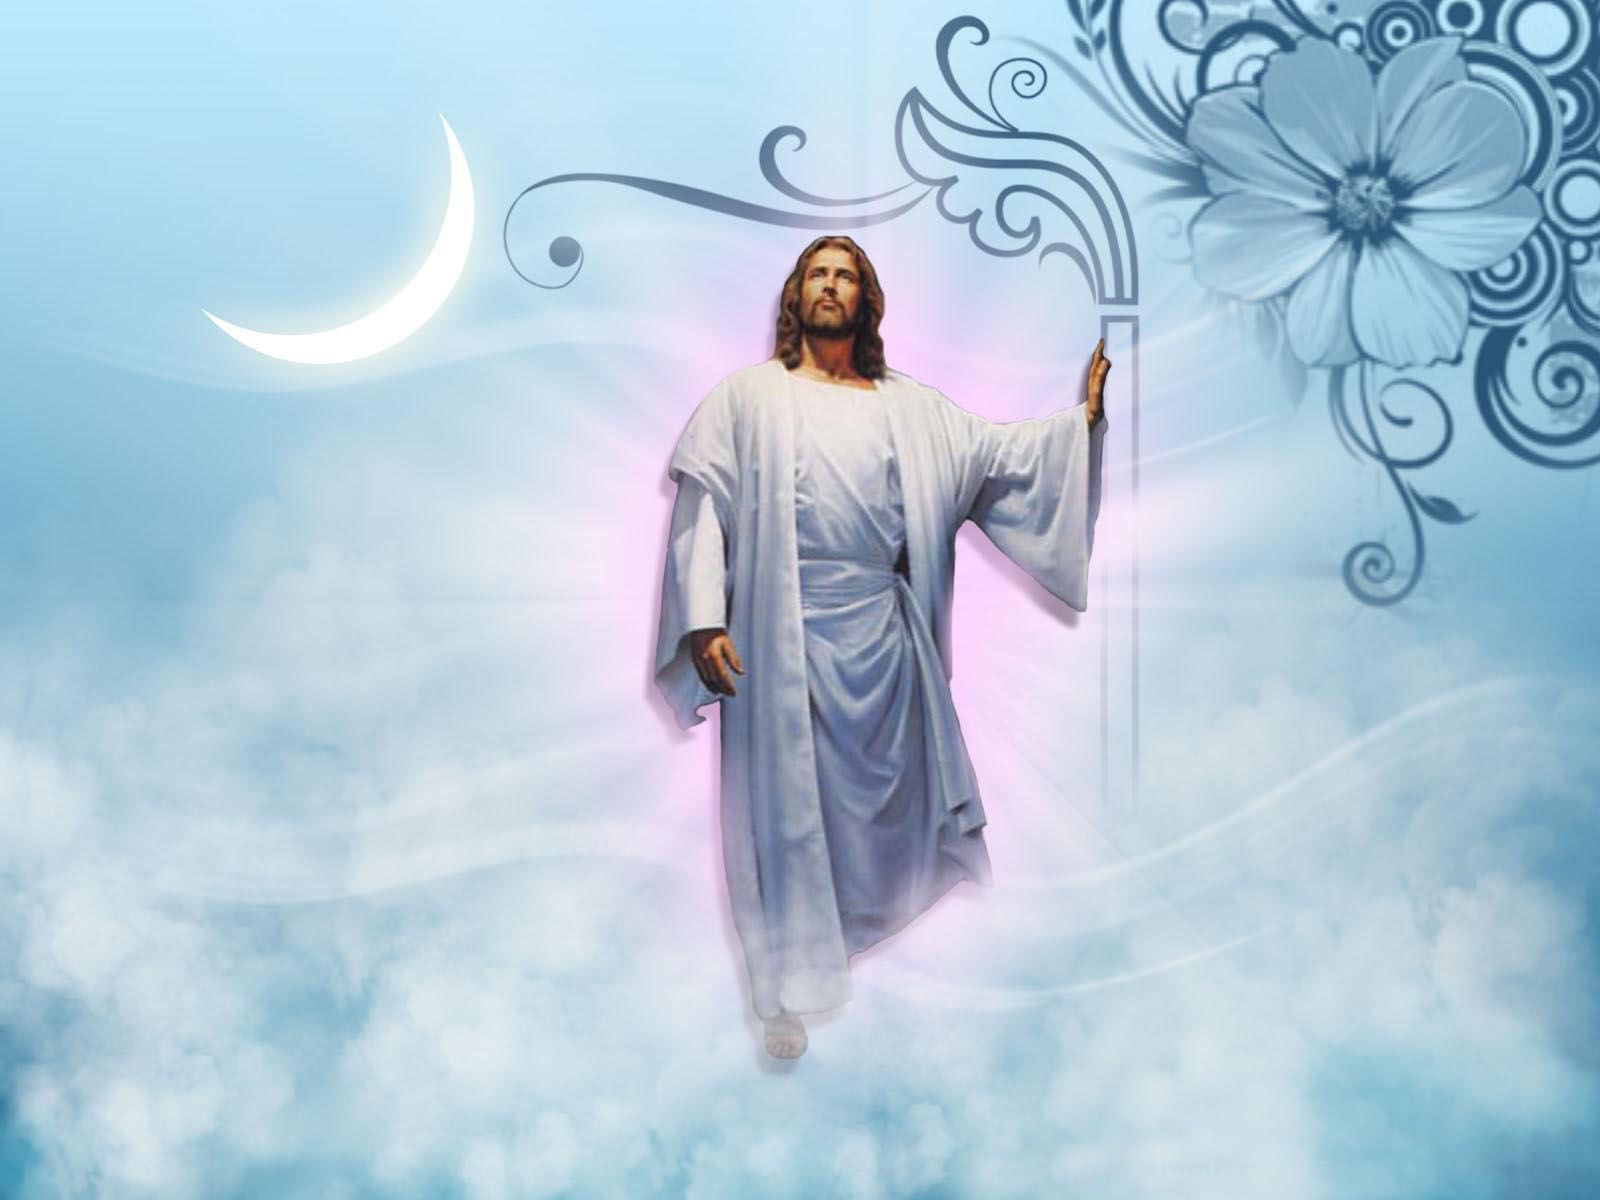 Jesus Christ HD wallpaper for download in laptop and desktop